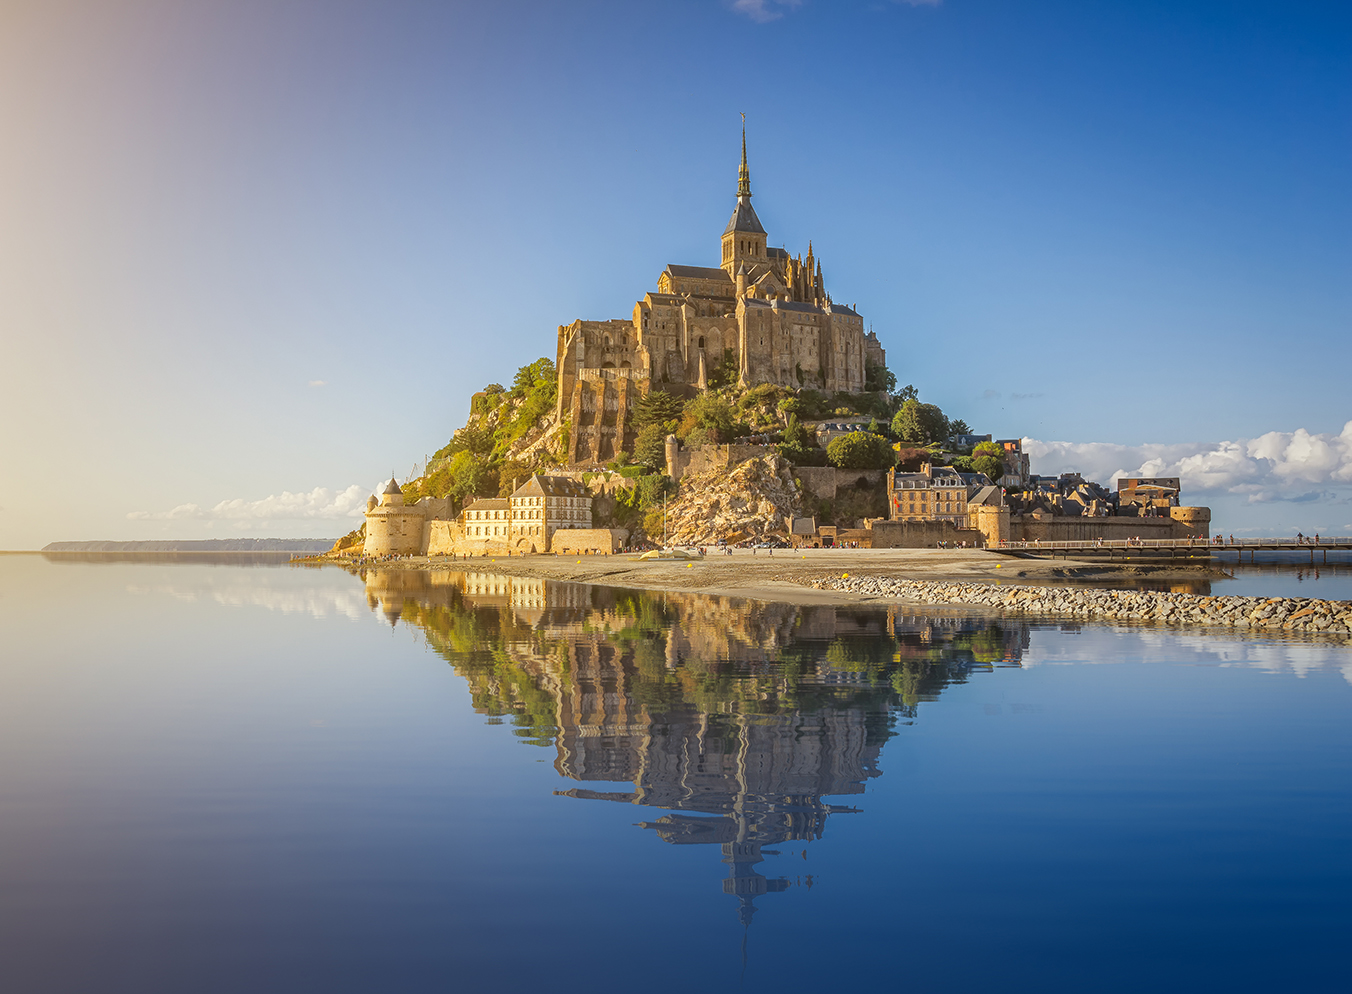 medieval abbey on an island in France